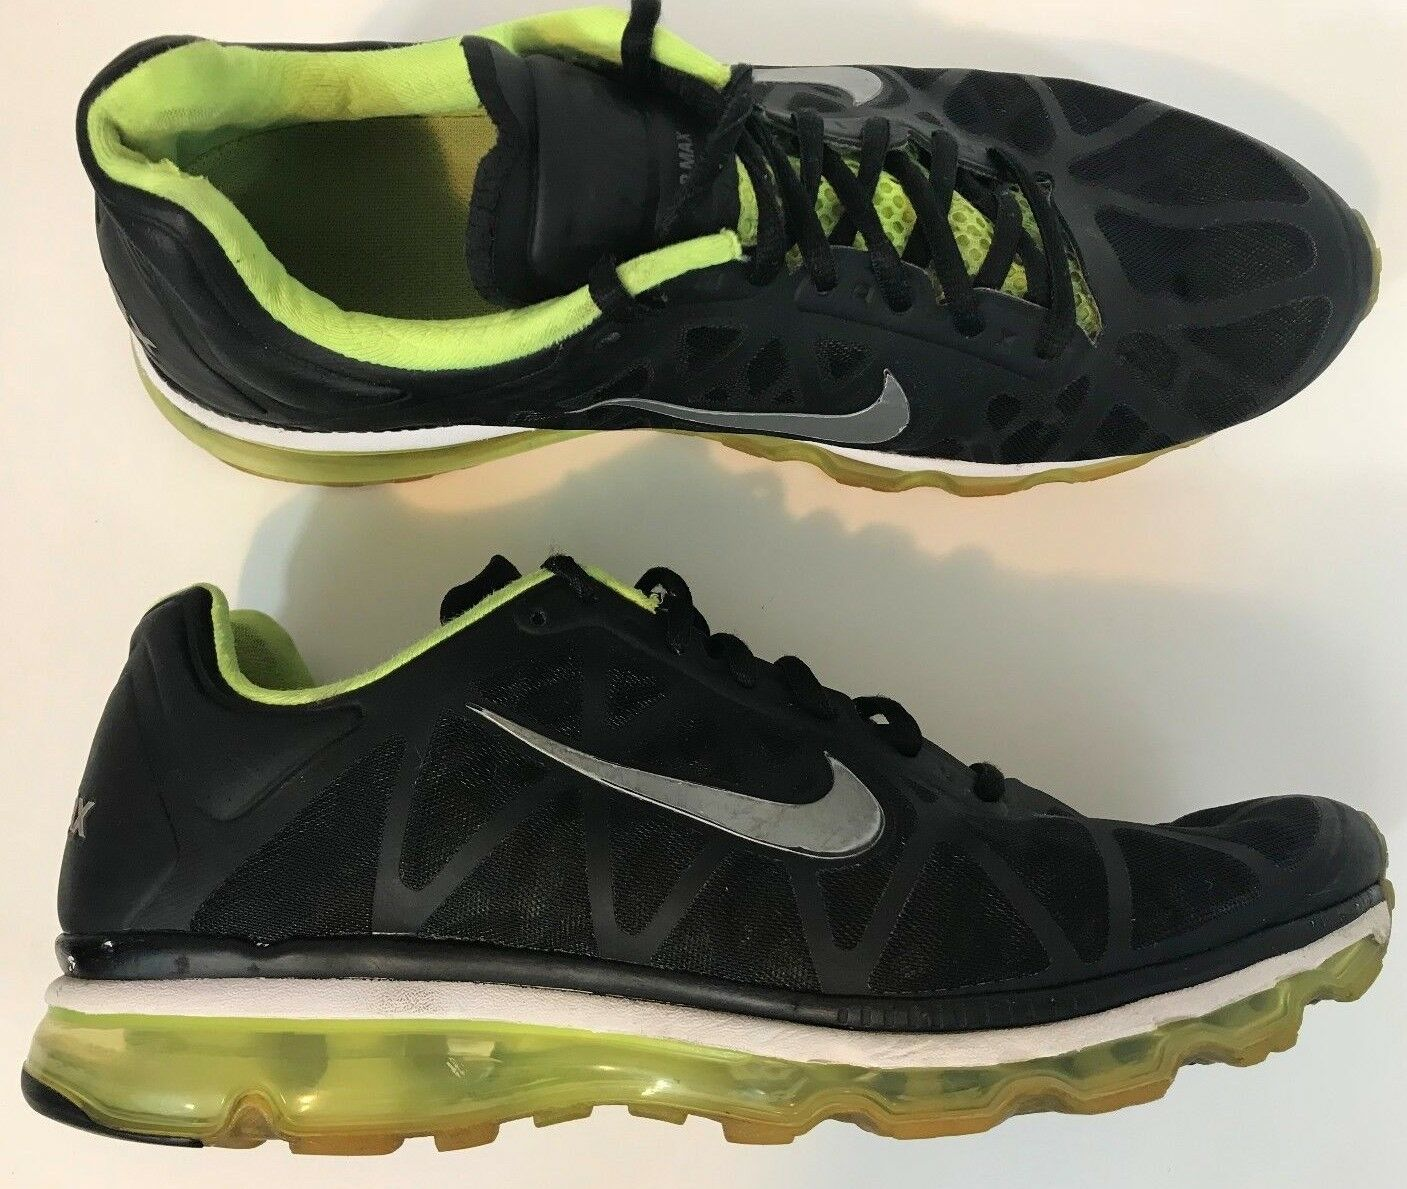 Nike Air Max 2011 Mens Running shoes Size 11.5 Black Volt Neon Green